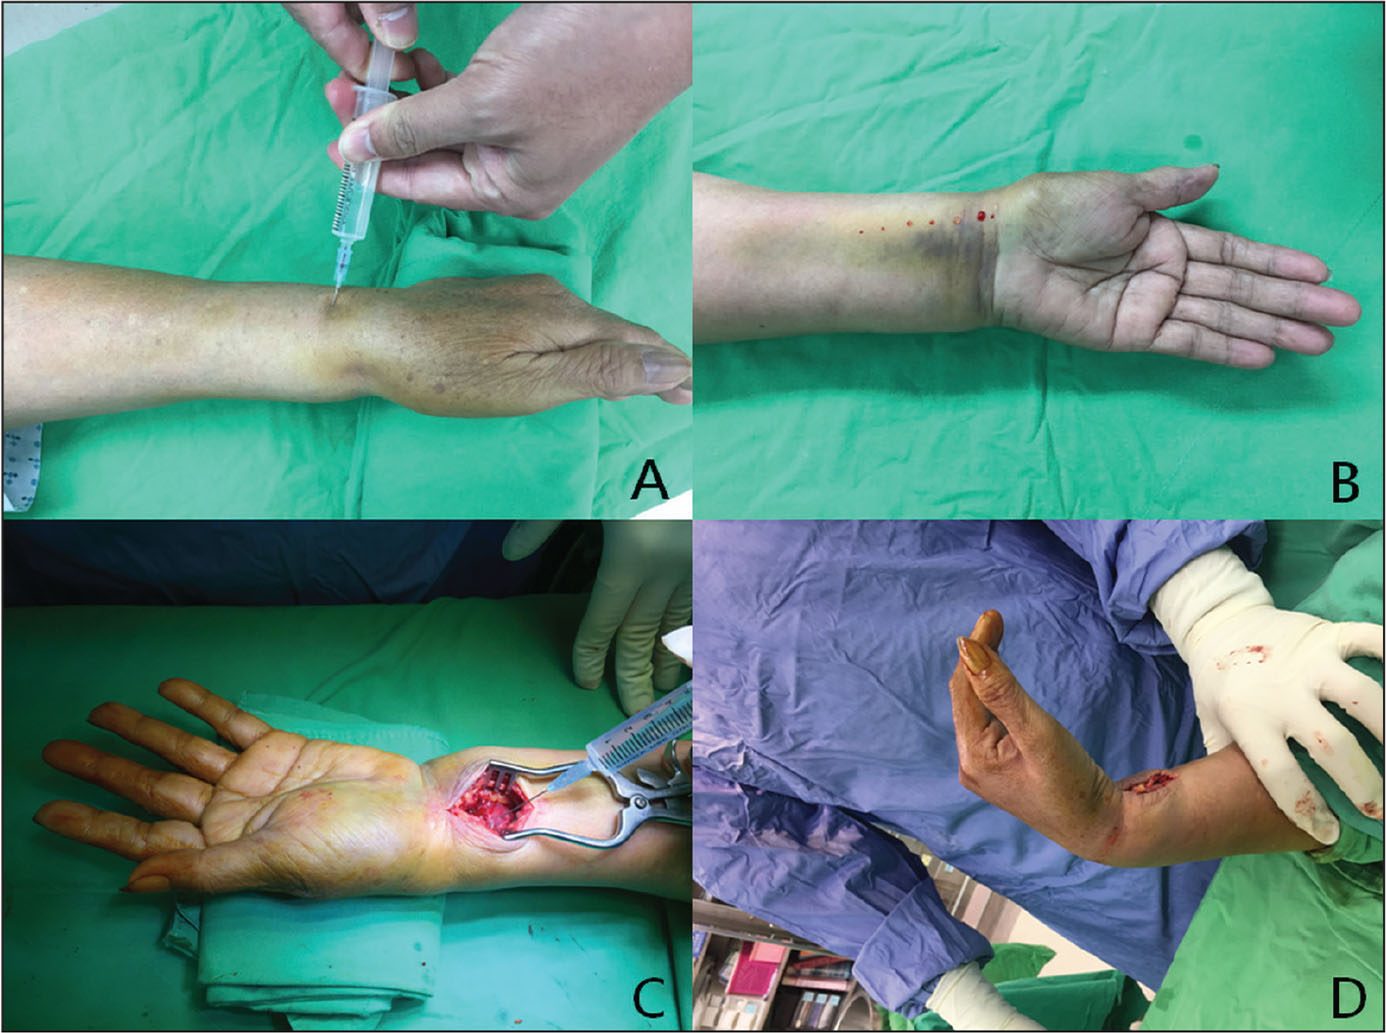 The wide-awake local anesthesia no tourniquet technique for distal radius fracture. Hematoma block via 3- to 5-mL 1% lidocaine injection from the dorsal site into the fracture site (A). Subcutaneous injection with 1% lidocaine mixed with 1:40,000 epinephrine was administered onto the operative volar side of the distal radius (B). An additional 5 mL of 1% lidocaine mixed with 1:40,000 epinephrine was injected beneath the pronator quadratus (C). Testing the impingement of wrist joint and tendon function before wound closure (D).